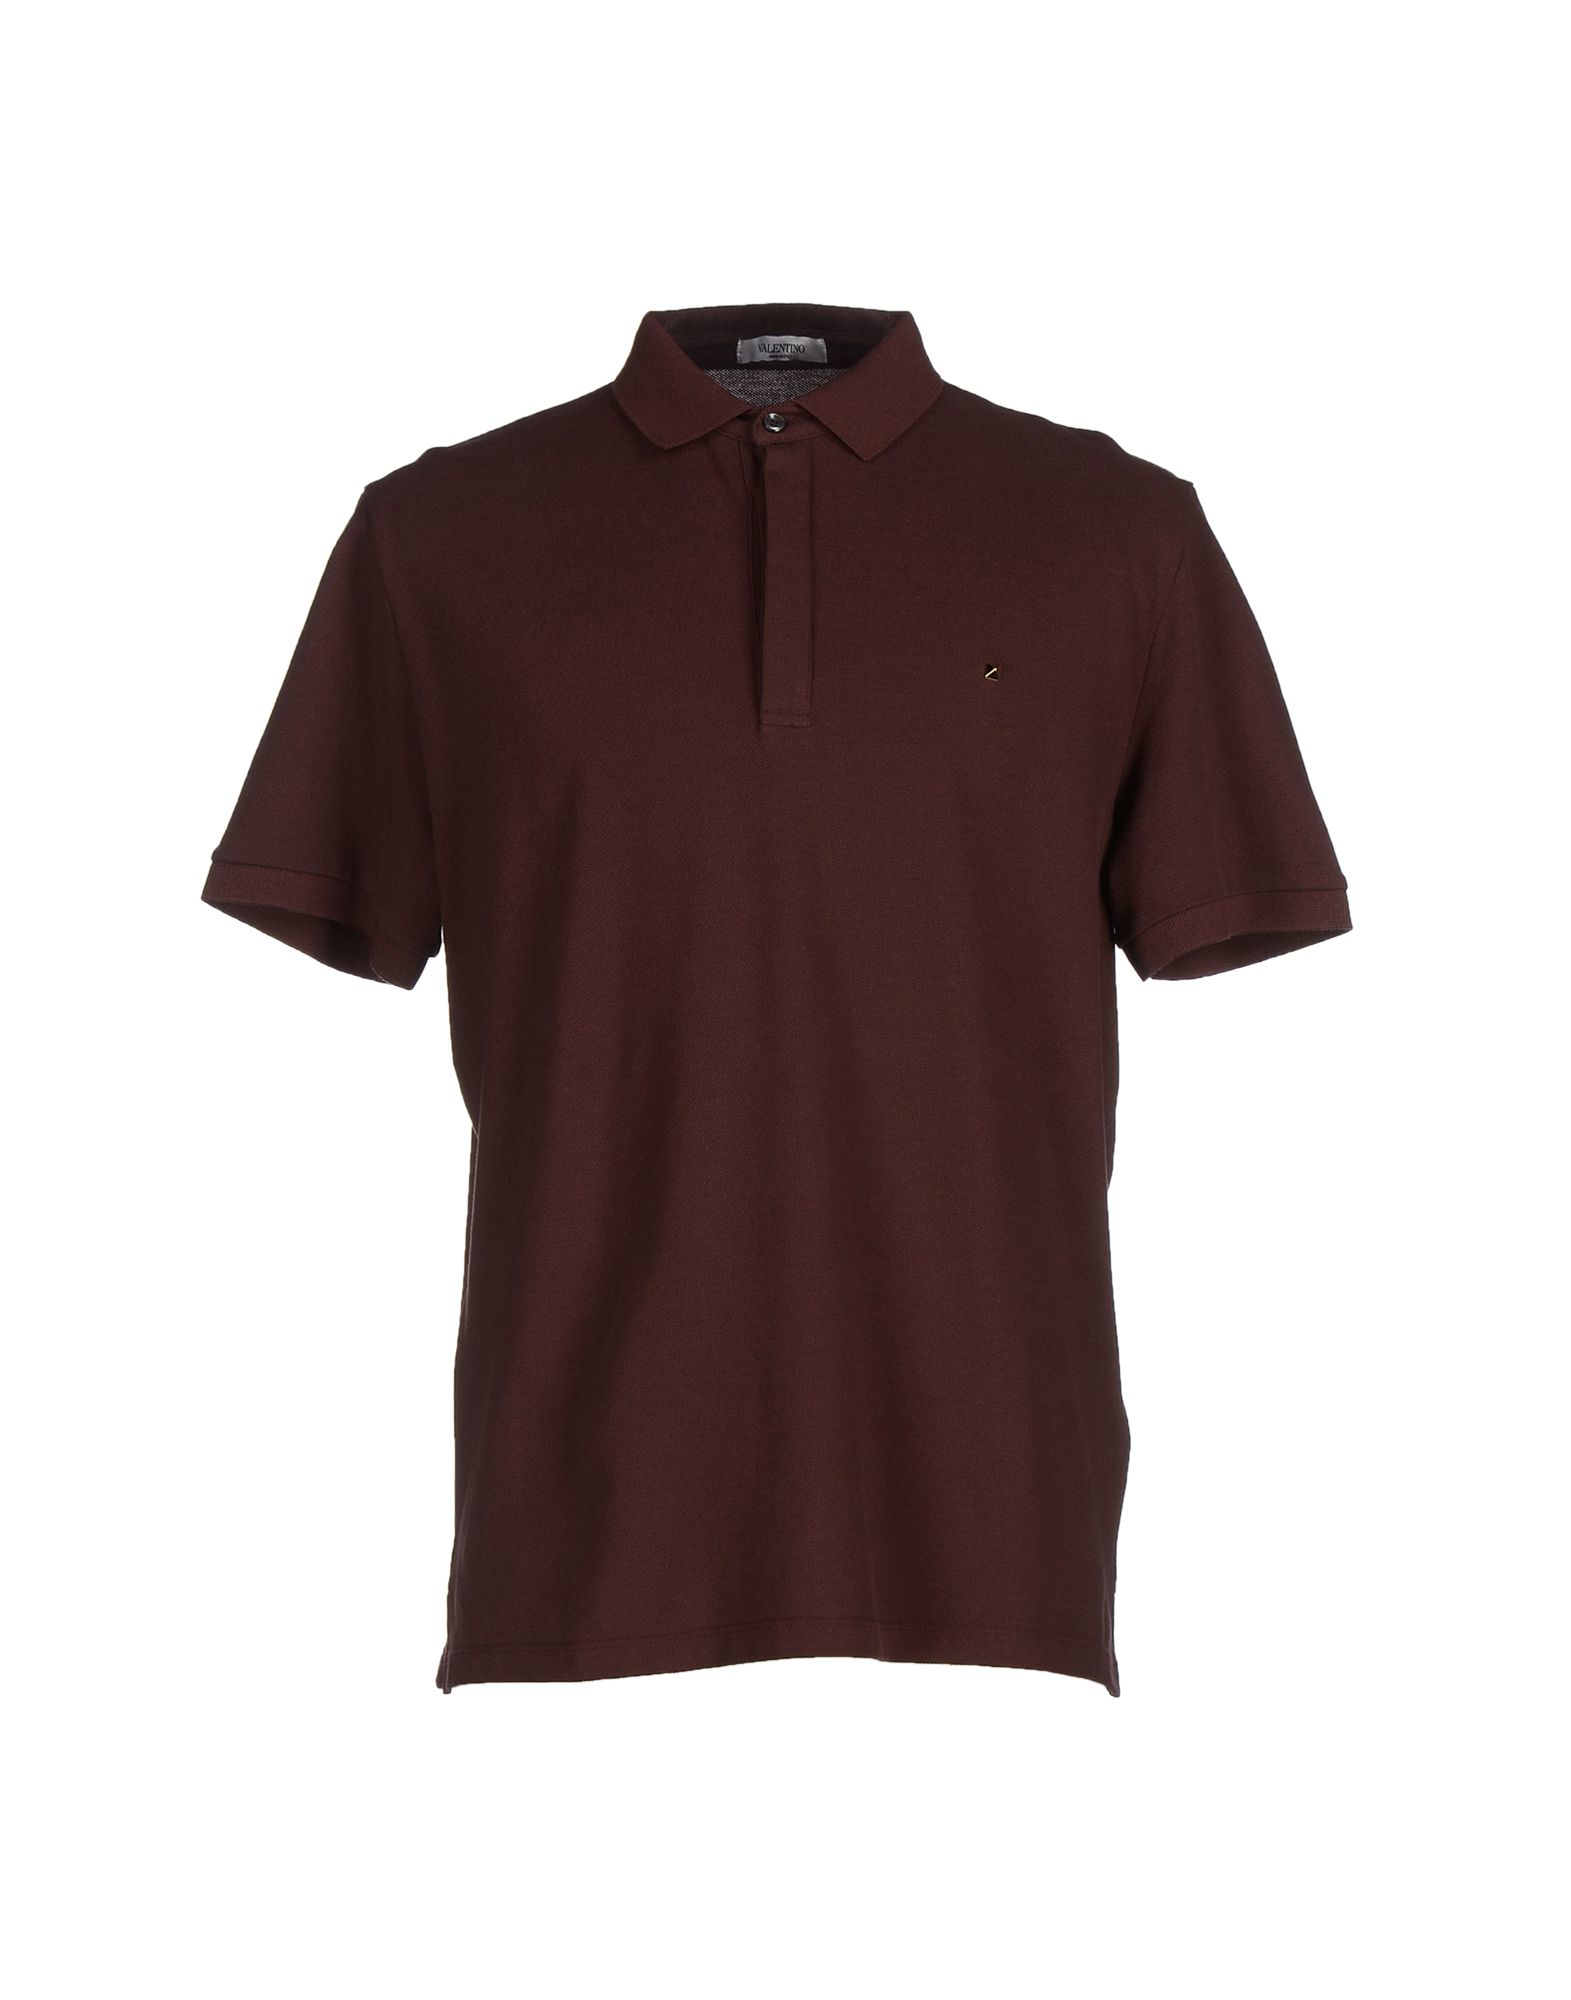 Valentino Polo Shirt In Brown For Men Cocoa Lyst